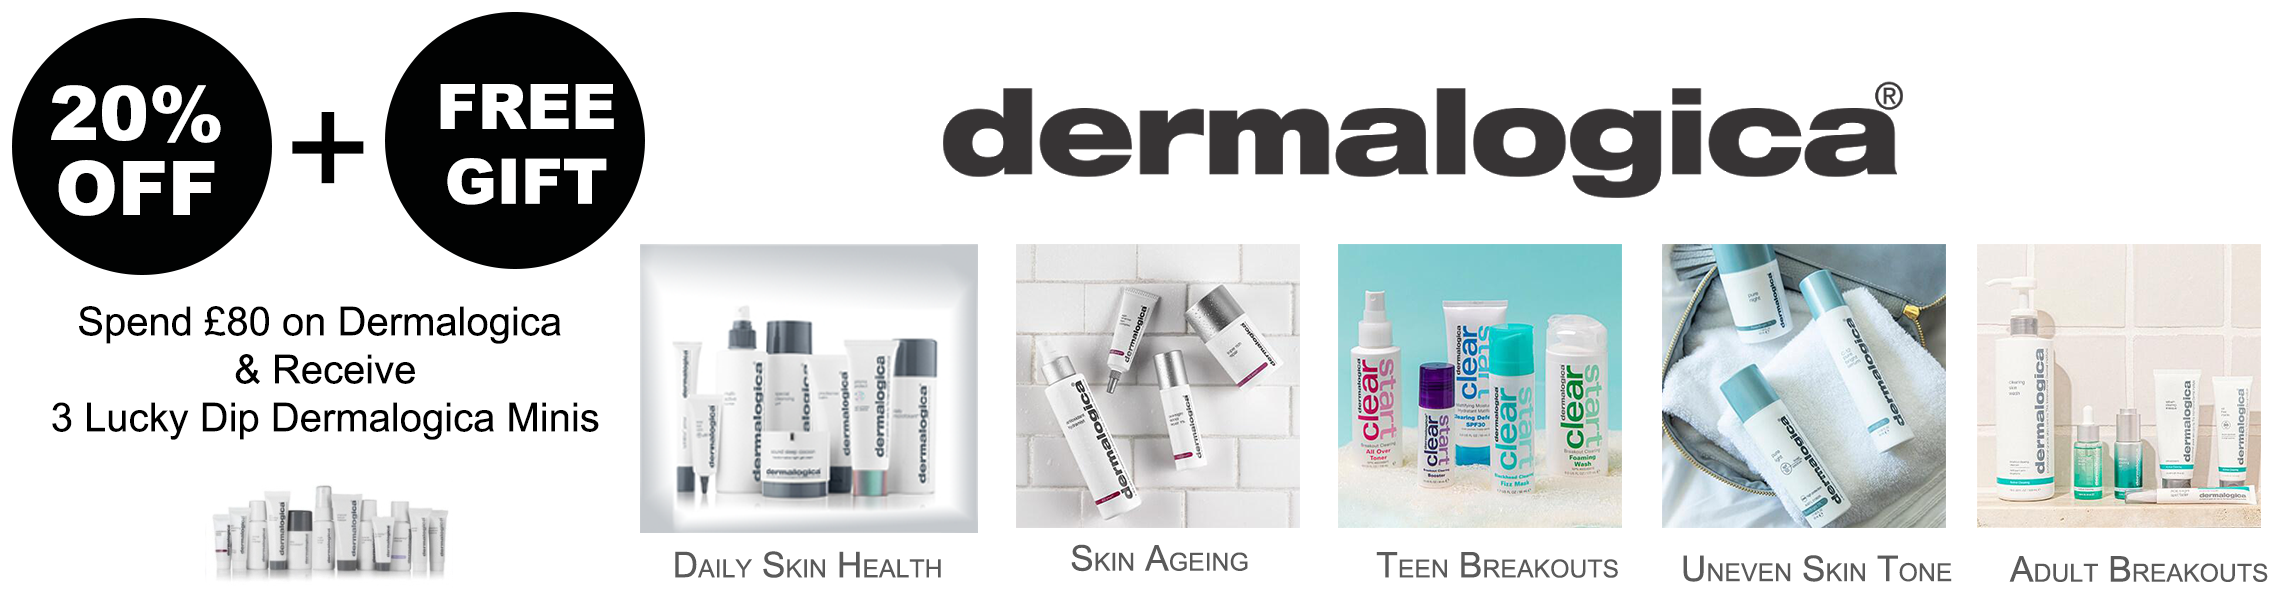 25% Dermalogica plus gifts on orders over £80